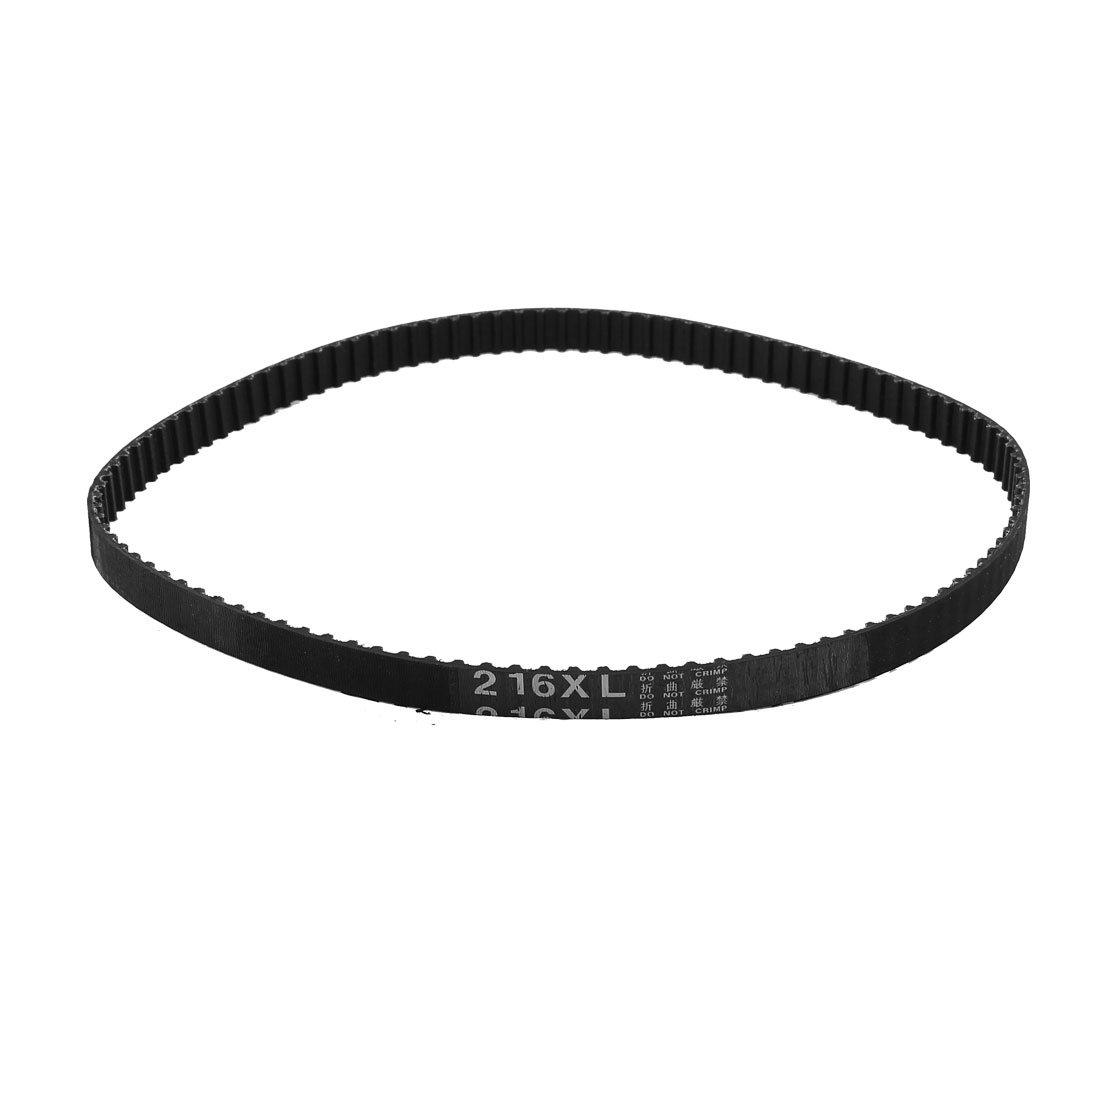 "216XL 21.6"" Girth 5.08mm Pitch 108-Teeth Black Rubber Industrial Synchro Machine Synchronous Timing Belt"